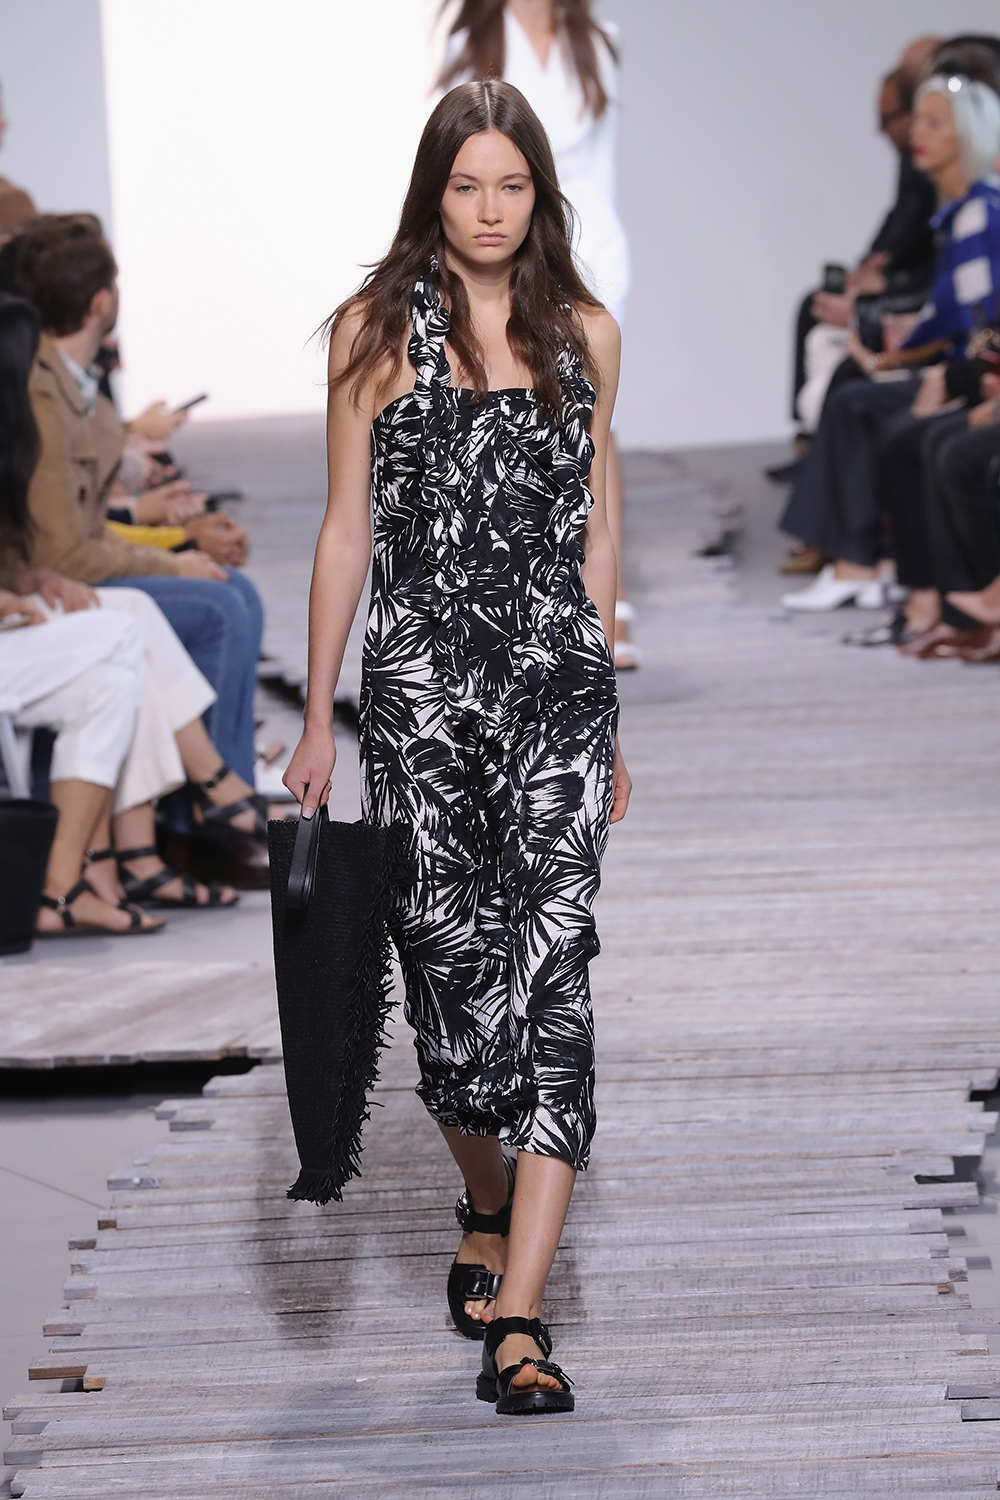 Michael Kors Collection Spring 2018 Runway Show